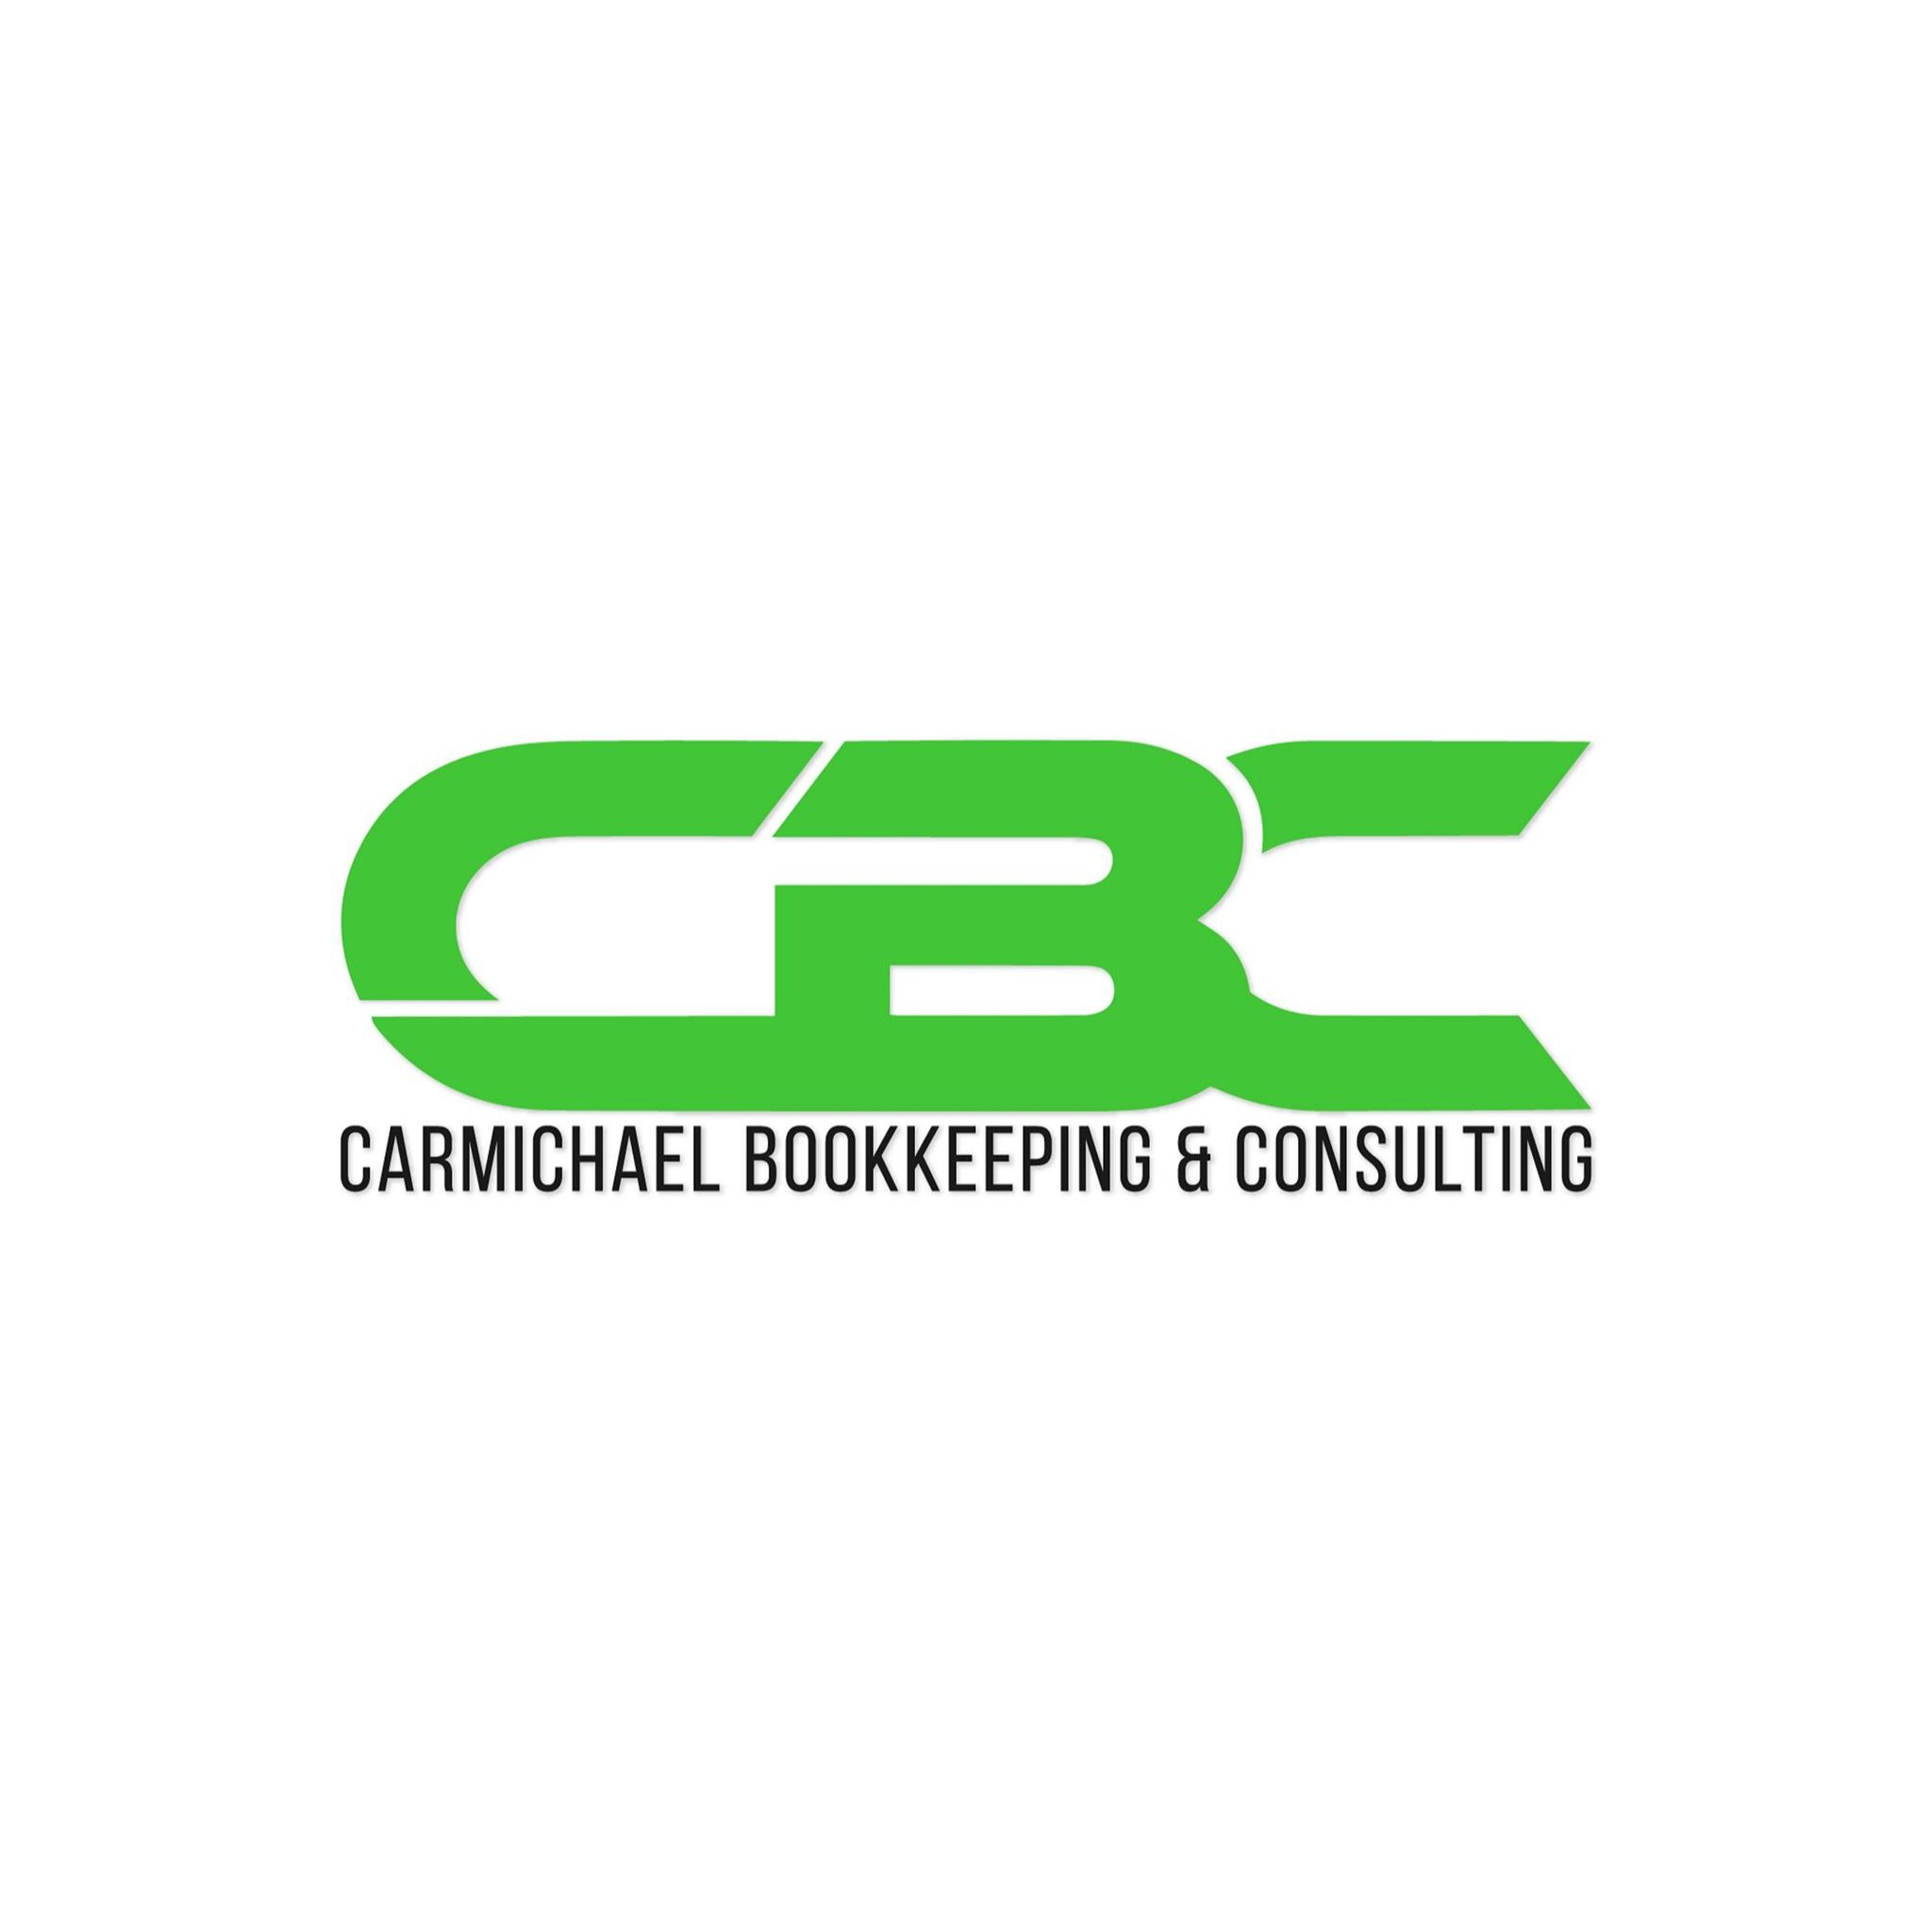 Carmichael Bookkeeping & Consulting, LLC